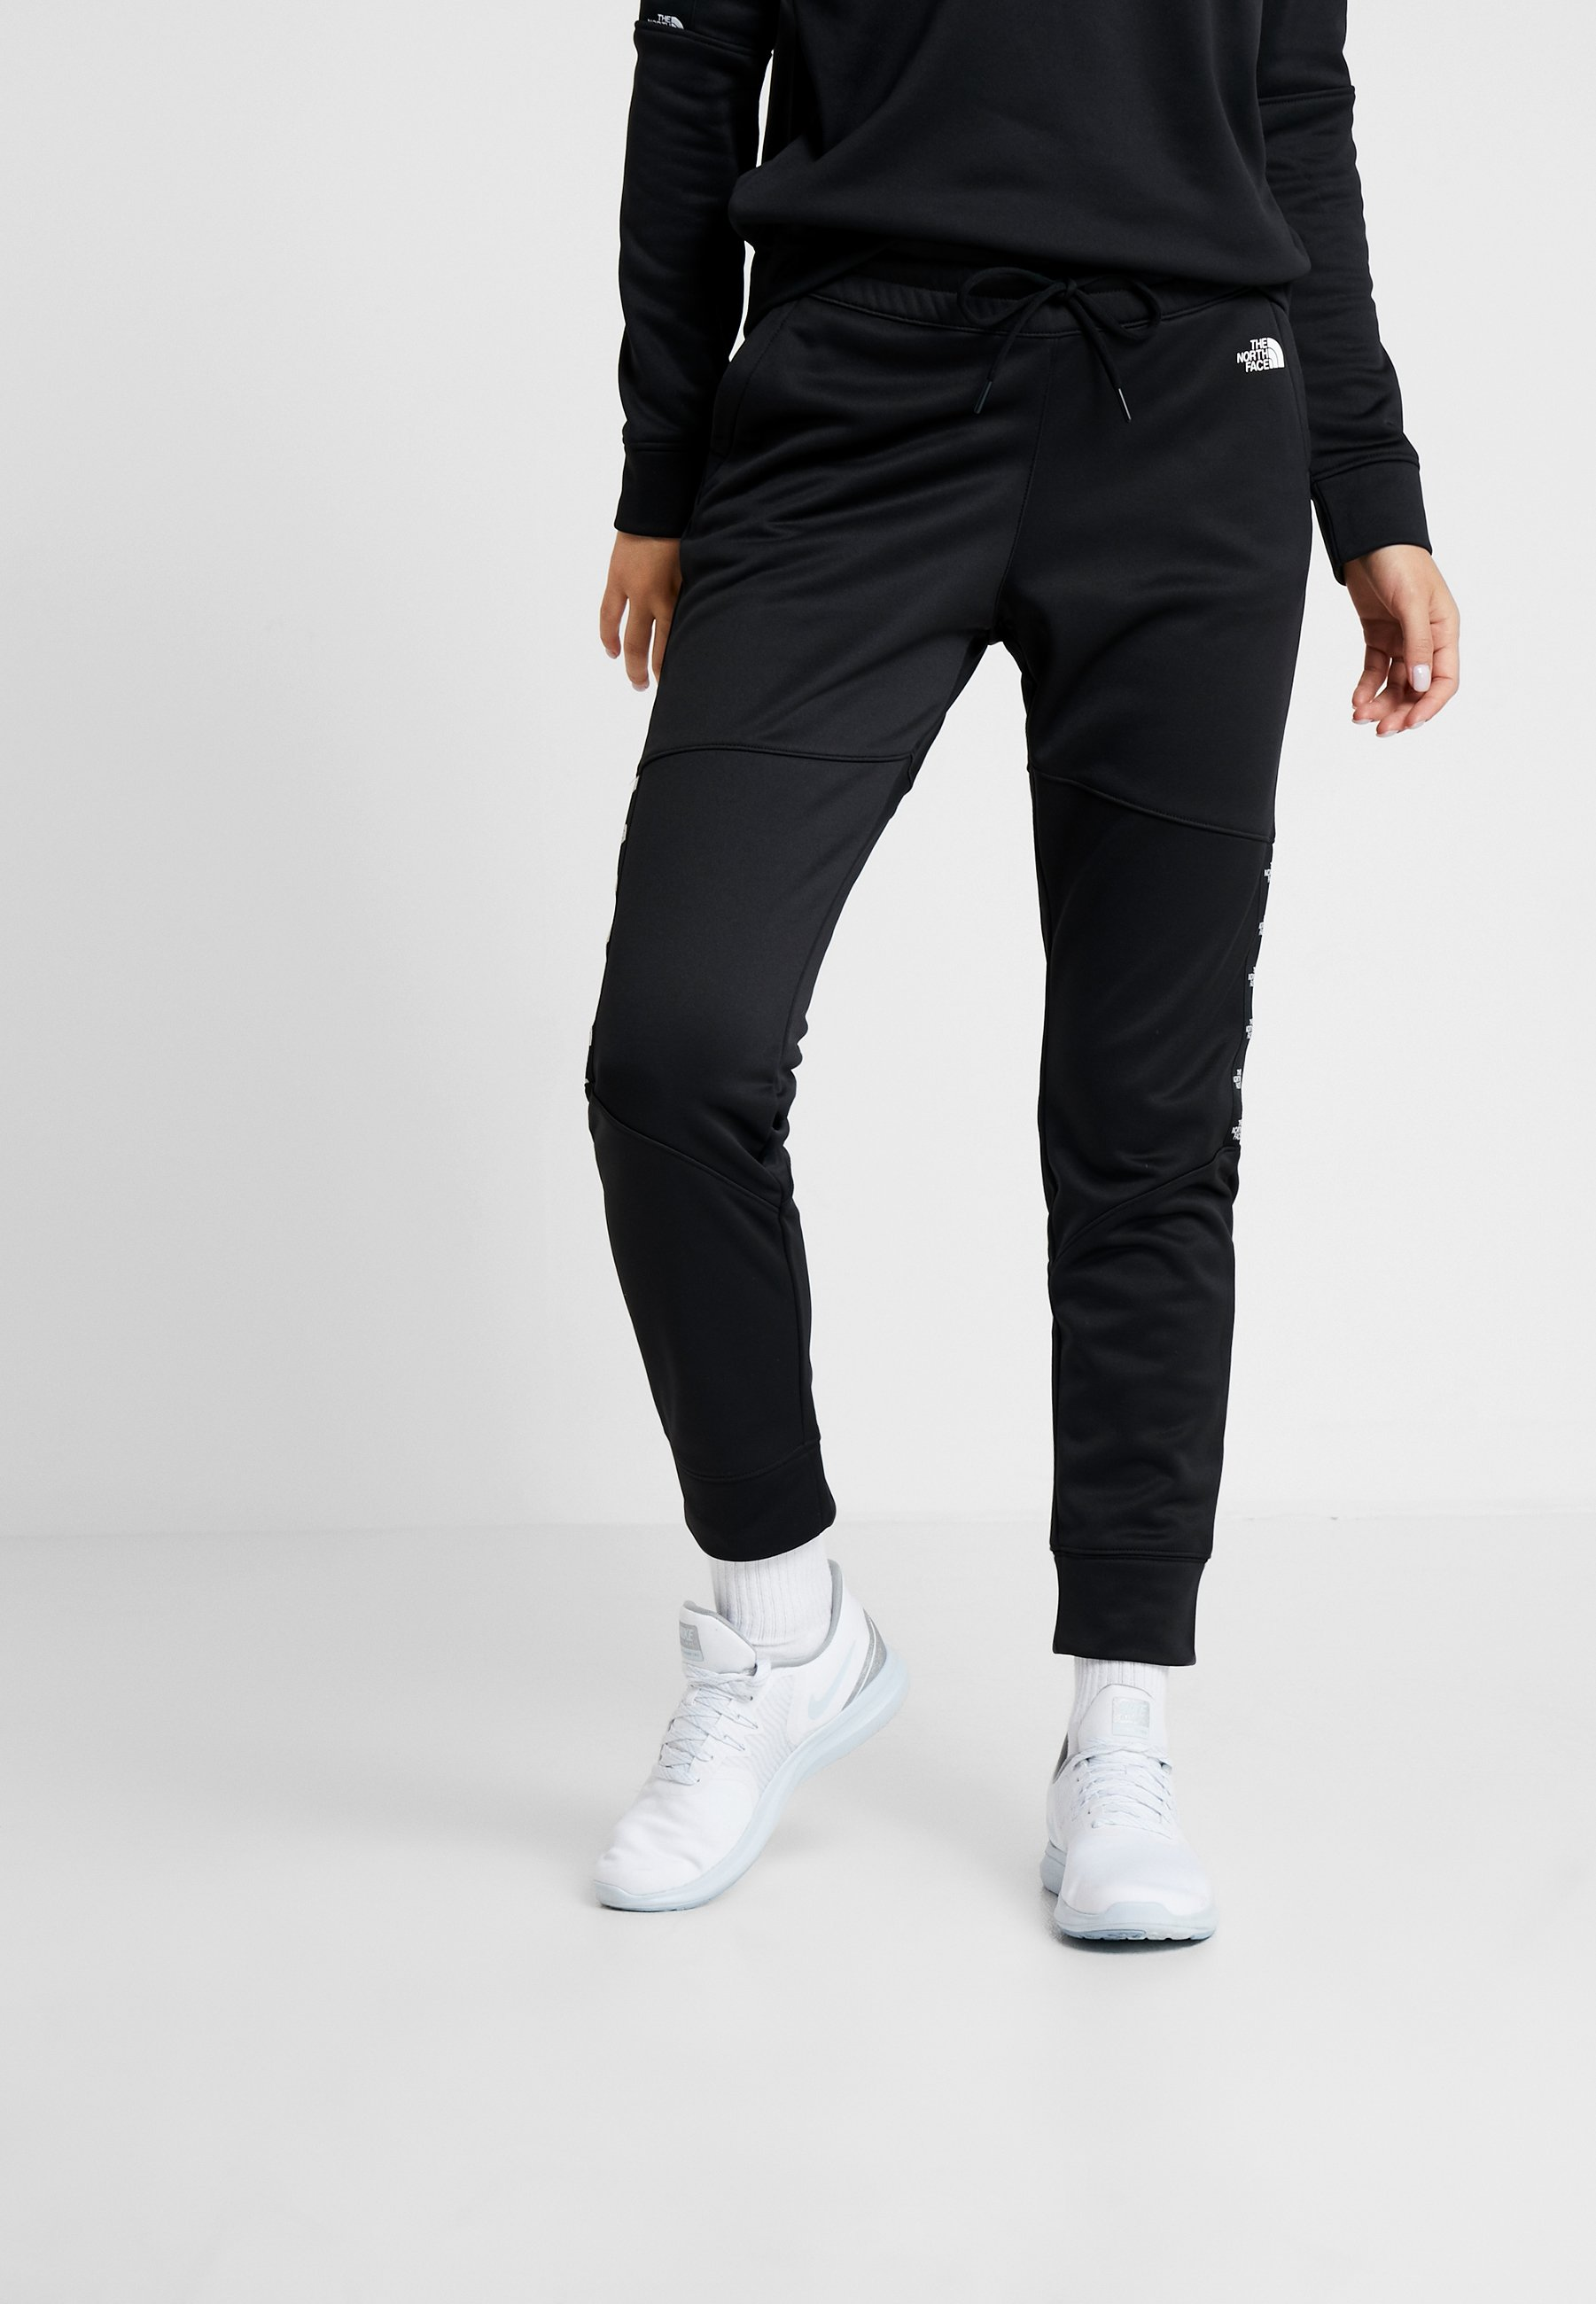 PantPantaloni North Sportivi Black The Face nw80kXOP